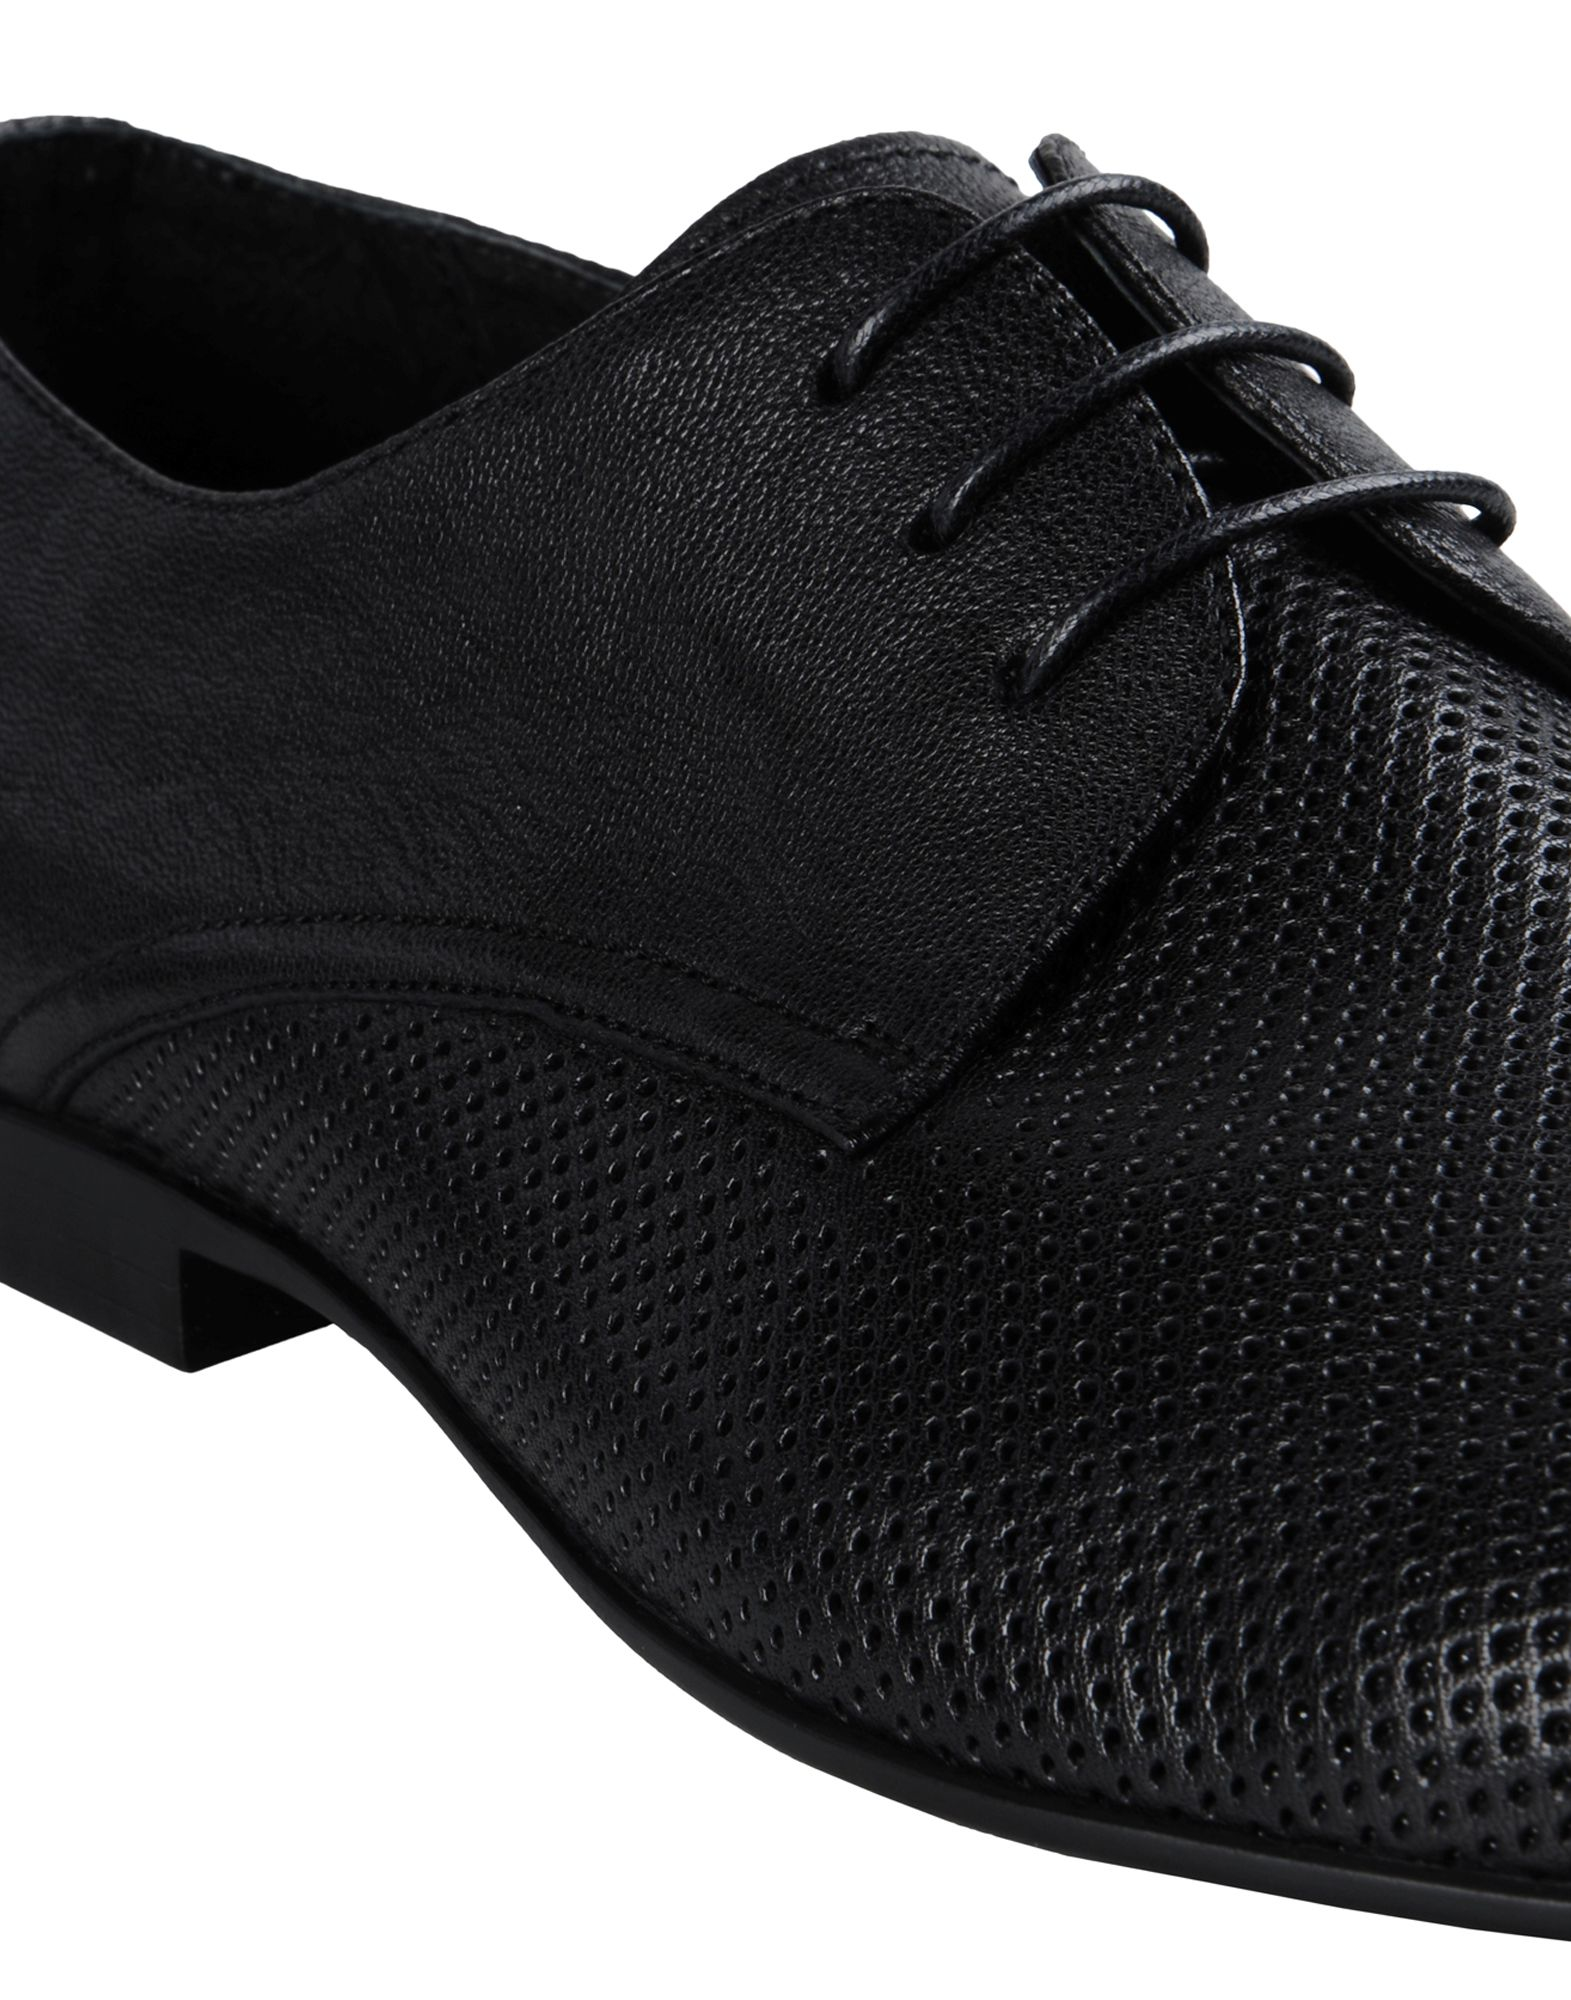 Carlo Pazolini Leather Lace-up Shoes in Black for Men